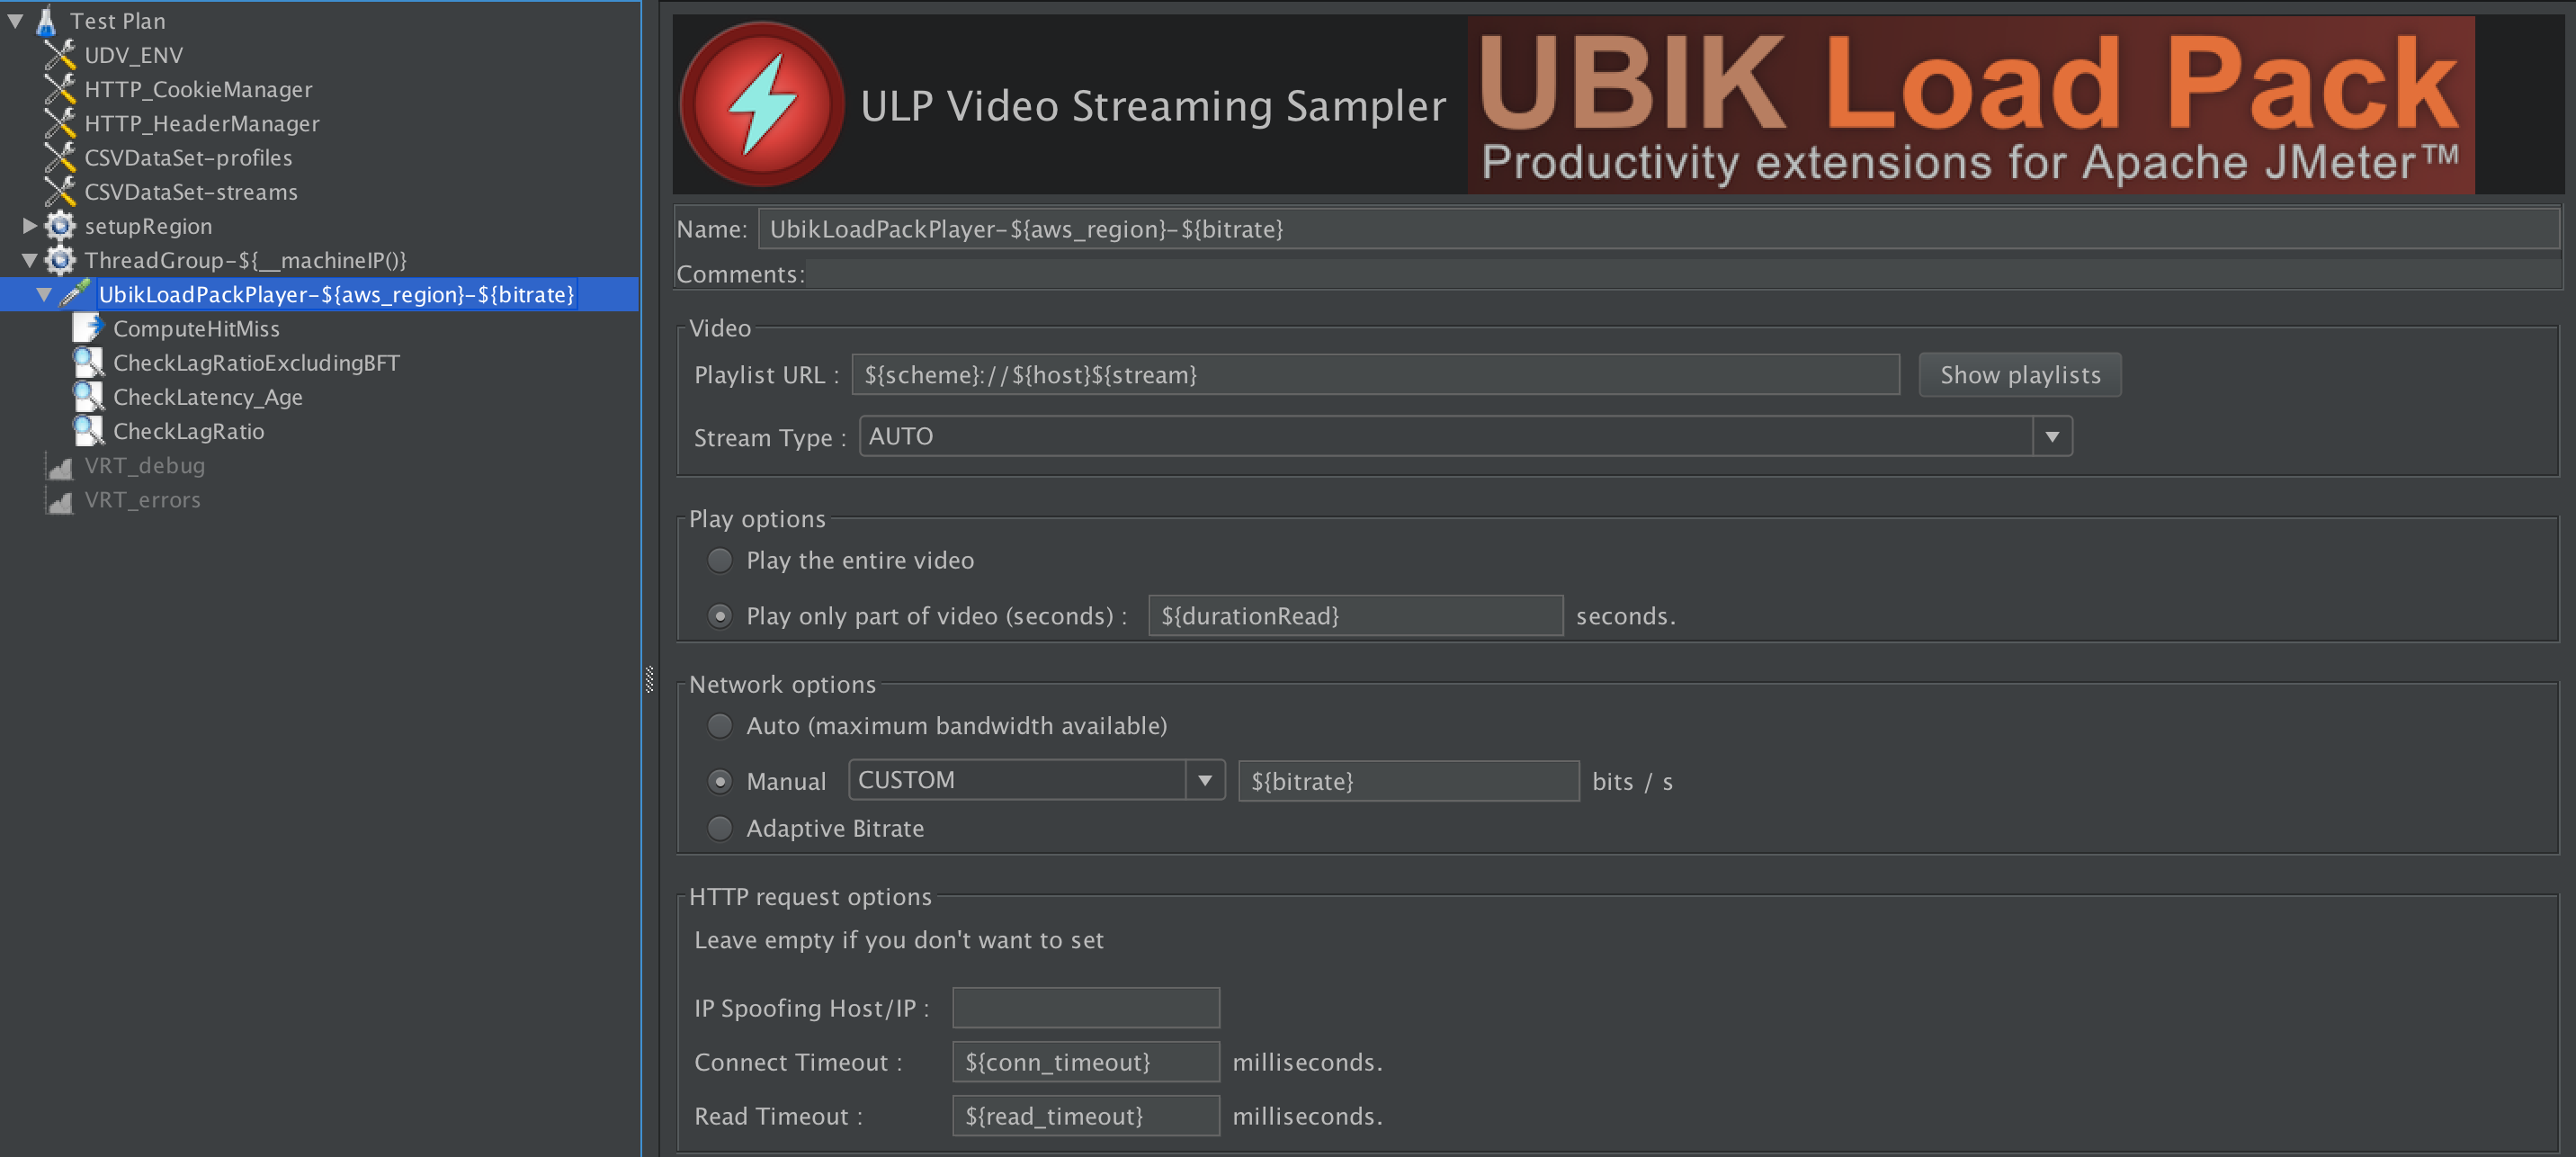 UbikLoadPack Player configuration